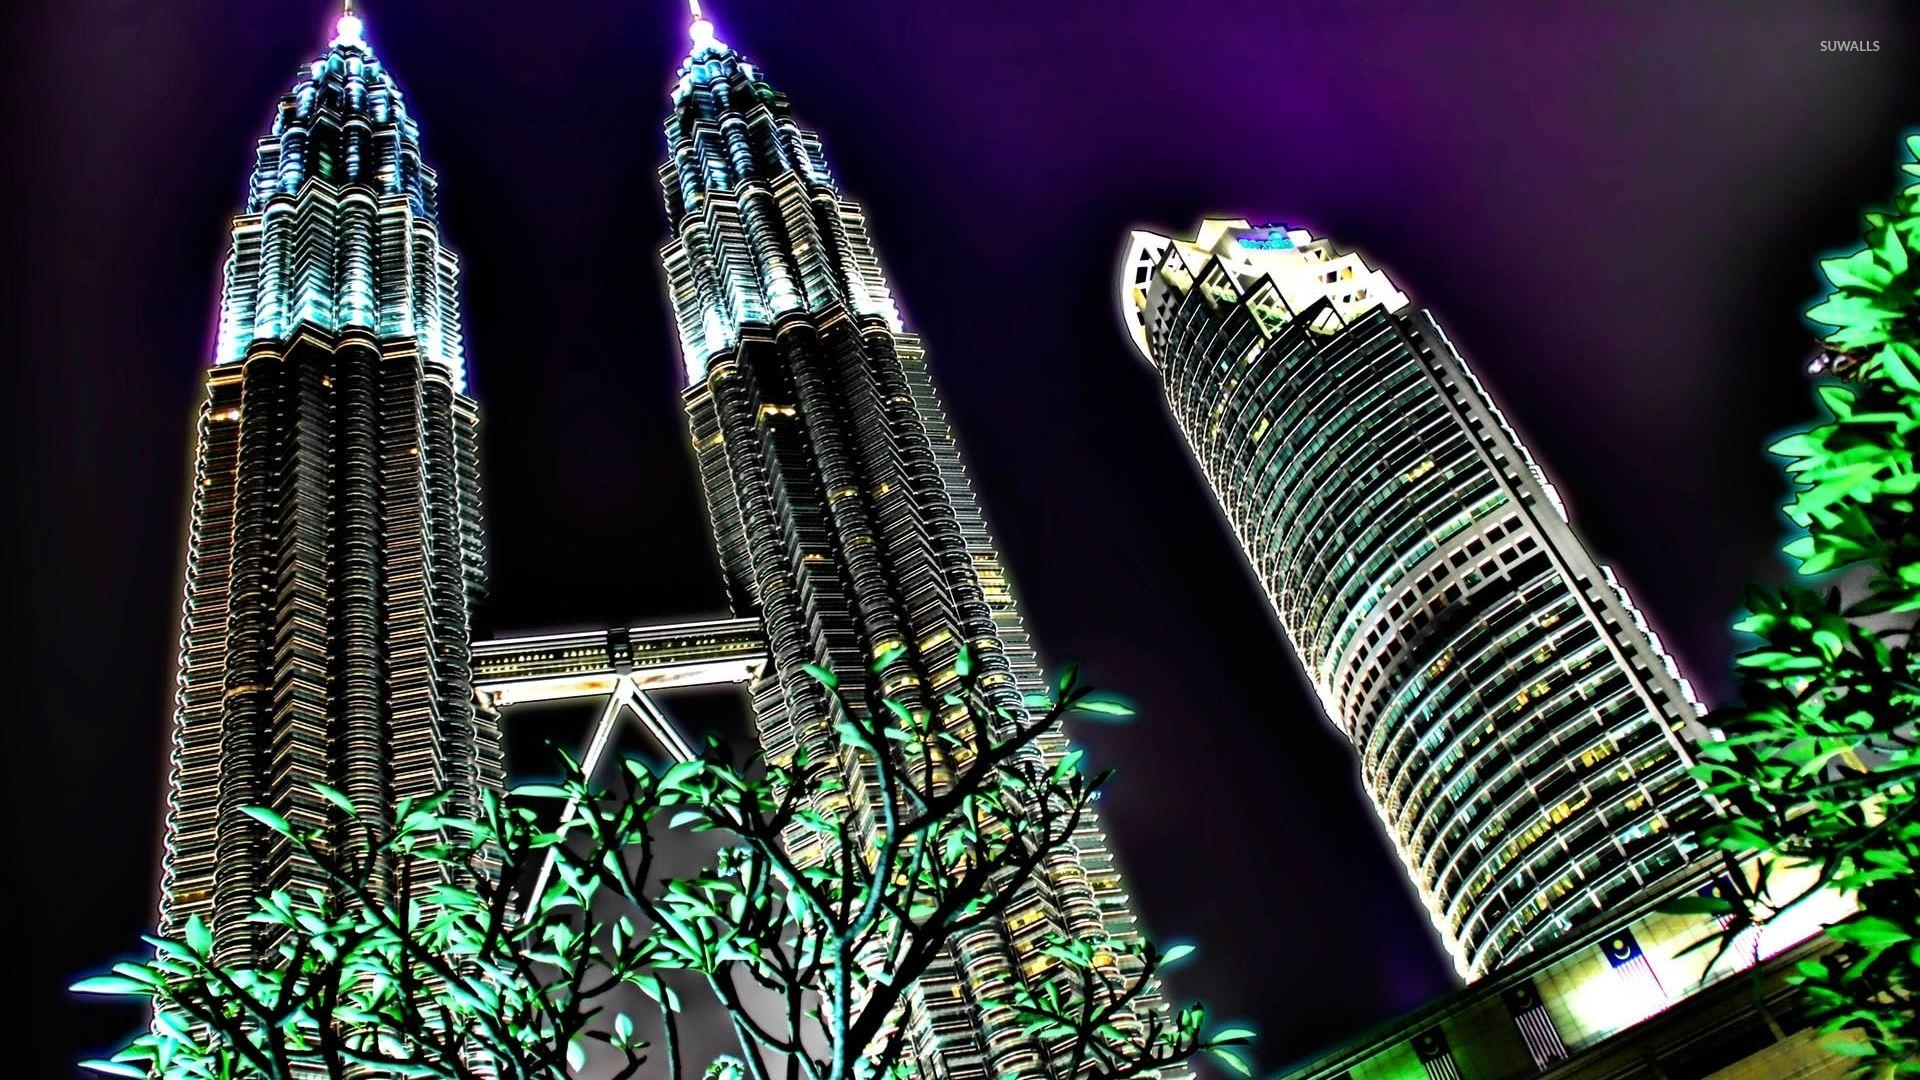 Petronas Towers in Kuala Lumpur wallpaper - World wallpapers - #4222